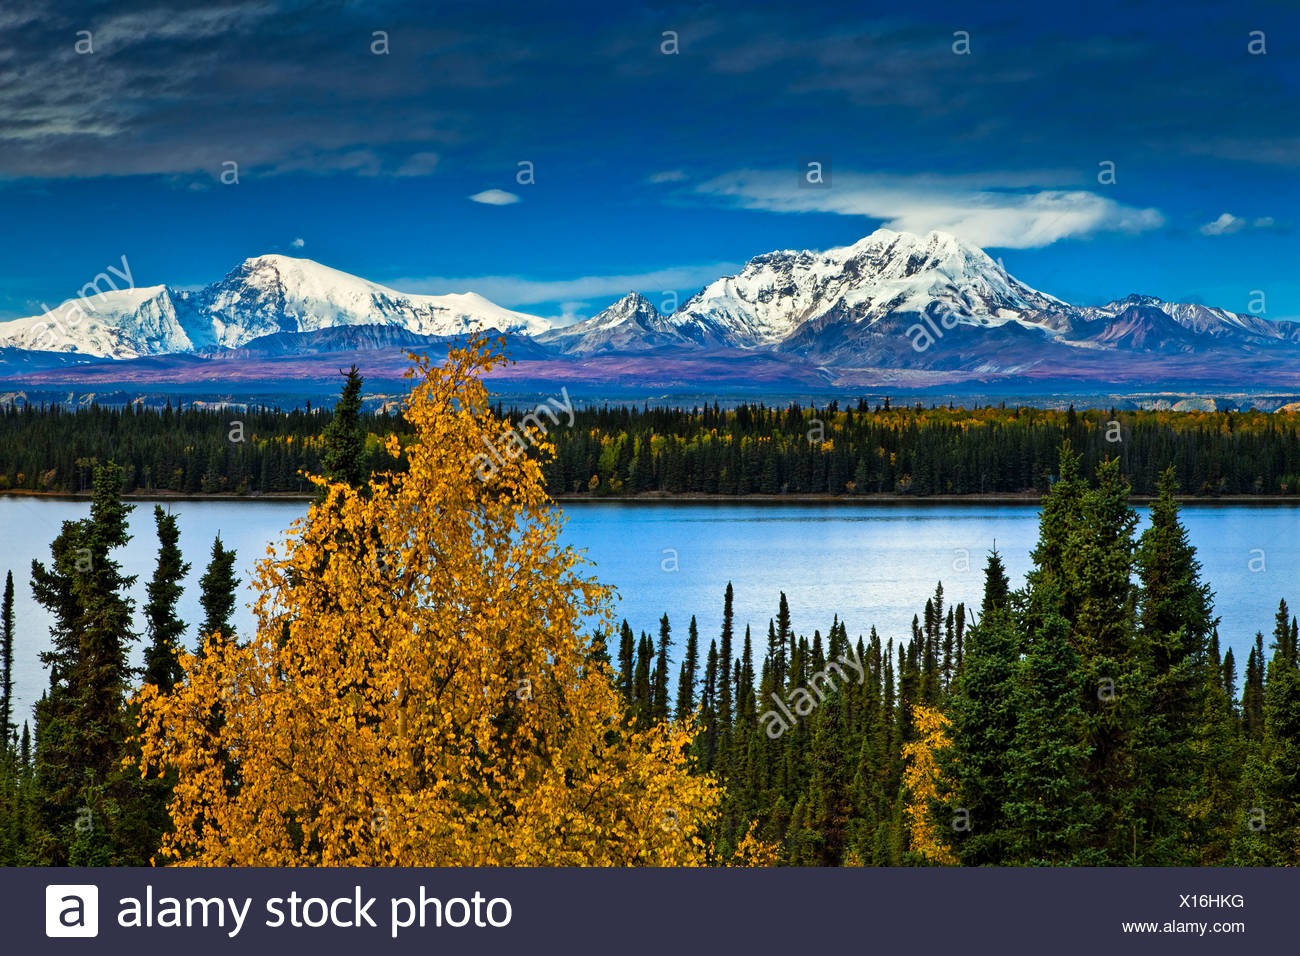 Scenic view of Mt. Sanford and Mt. Drum with Willow Lake in the foreground, Wrangell St. Elias National Park & Preserve, Alaska - Stock Image